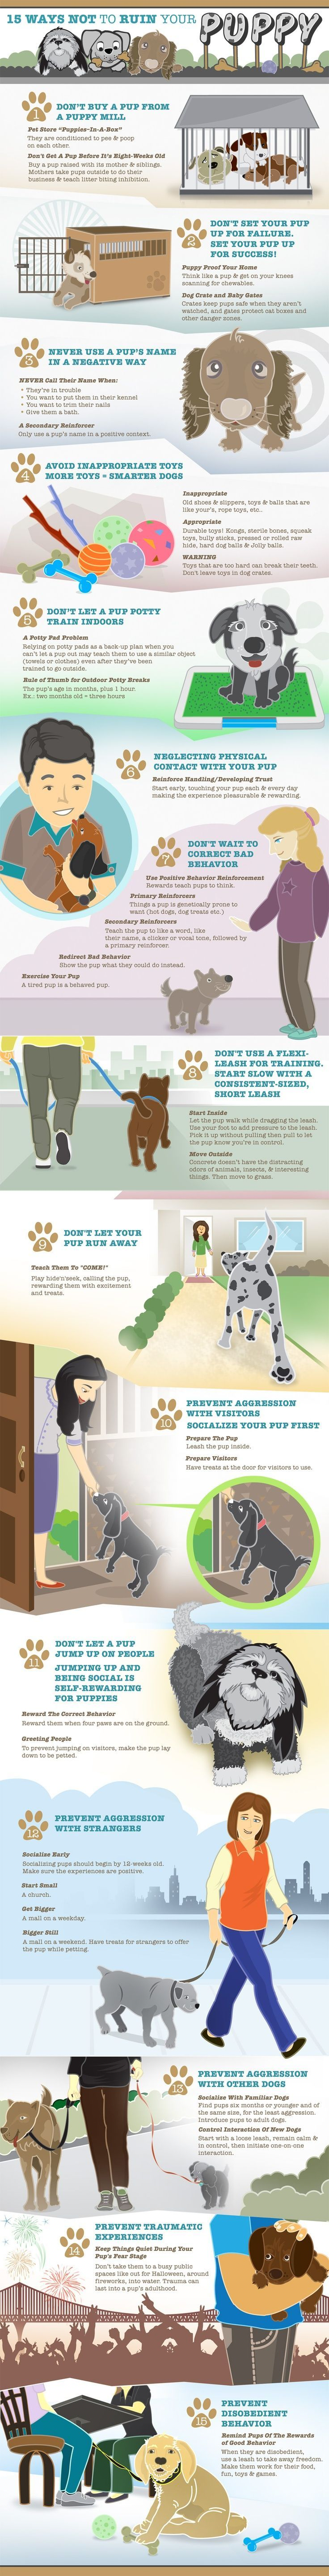 """Puppy Training Graphic A lot of good tips, but no puppy can actually be """"ruined,"""" :)"""